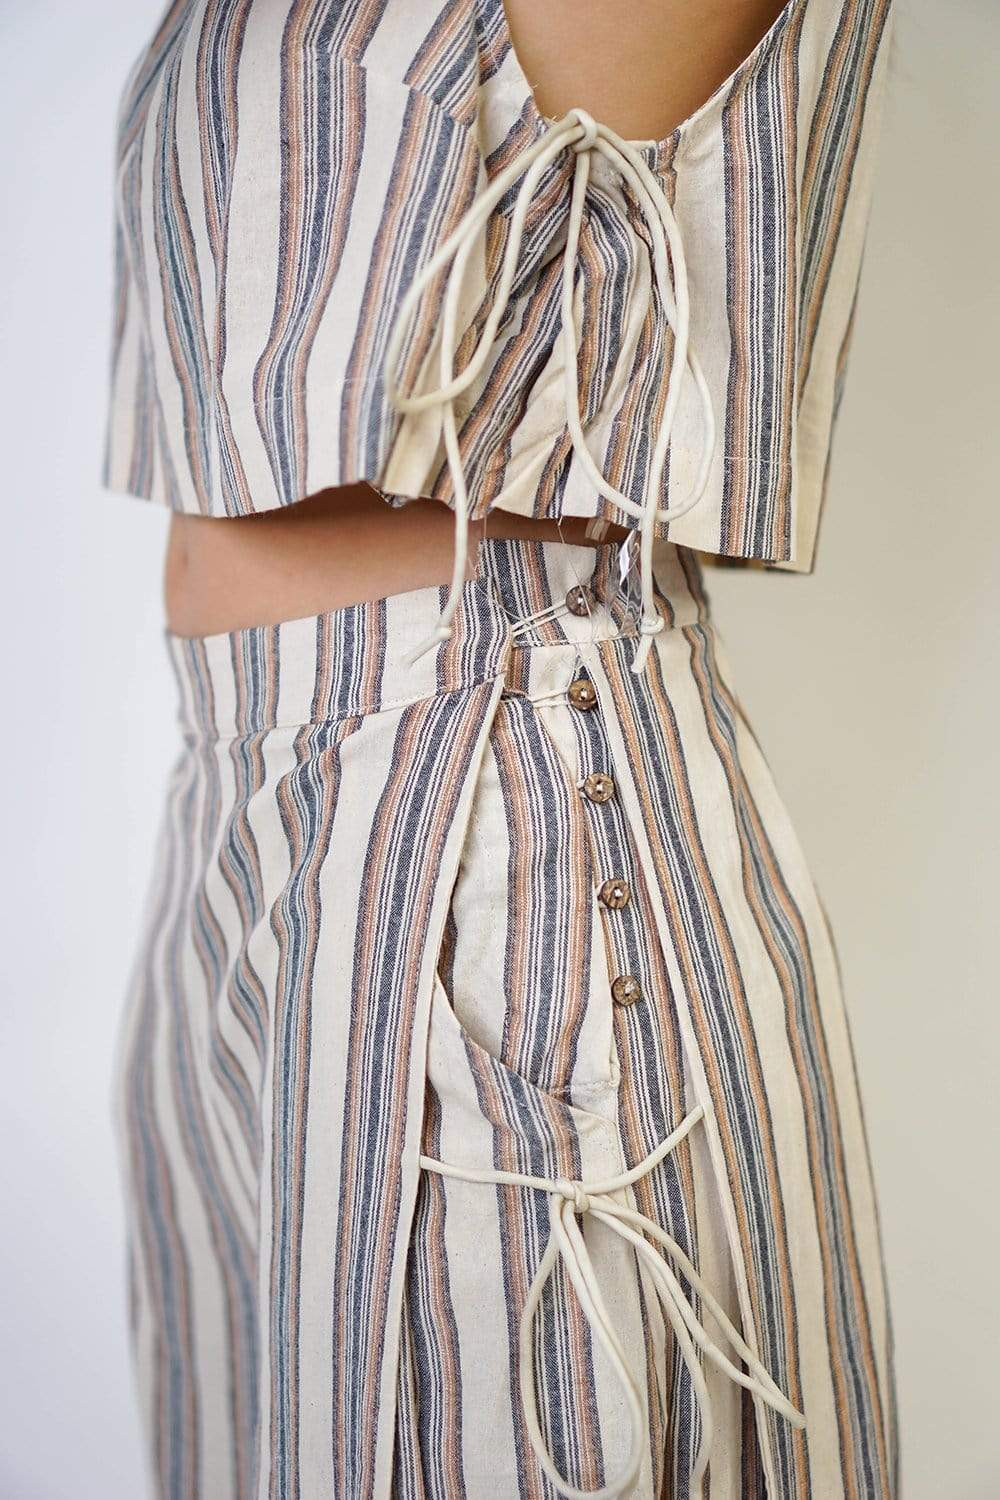 top Ivory Stripe Textured Top Set - Chloe Dao